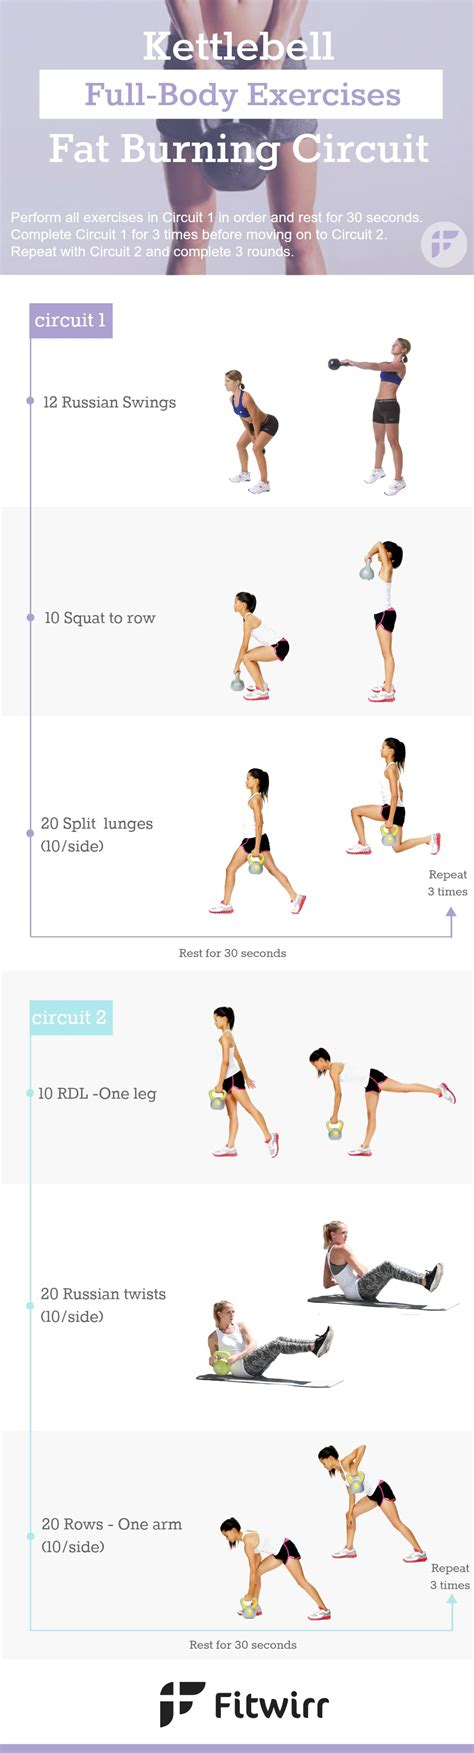 kettlebell workout routines fitness kettle workouts exercises bell routine body kettlebells exercise strength fat training weight loss plan cardio week